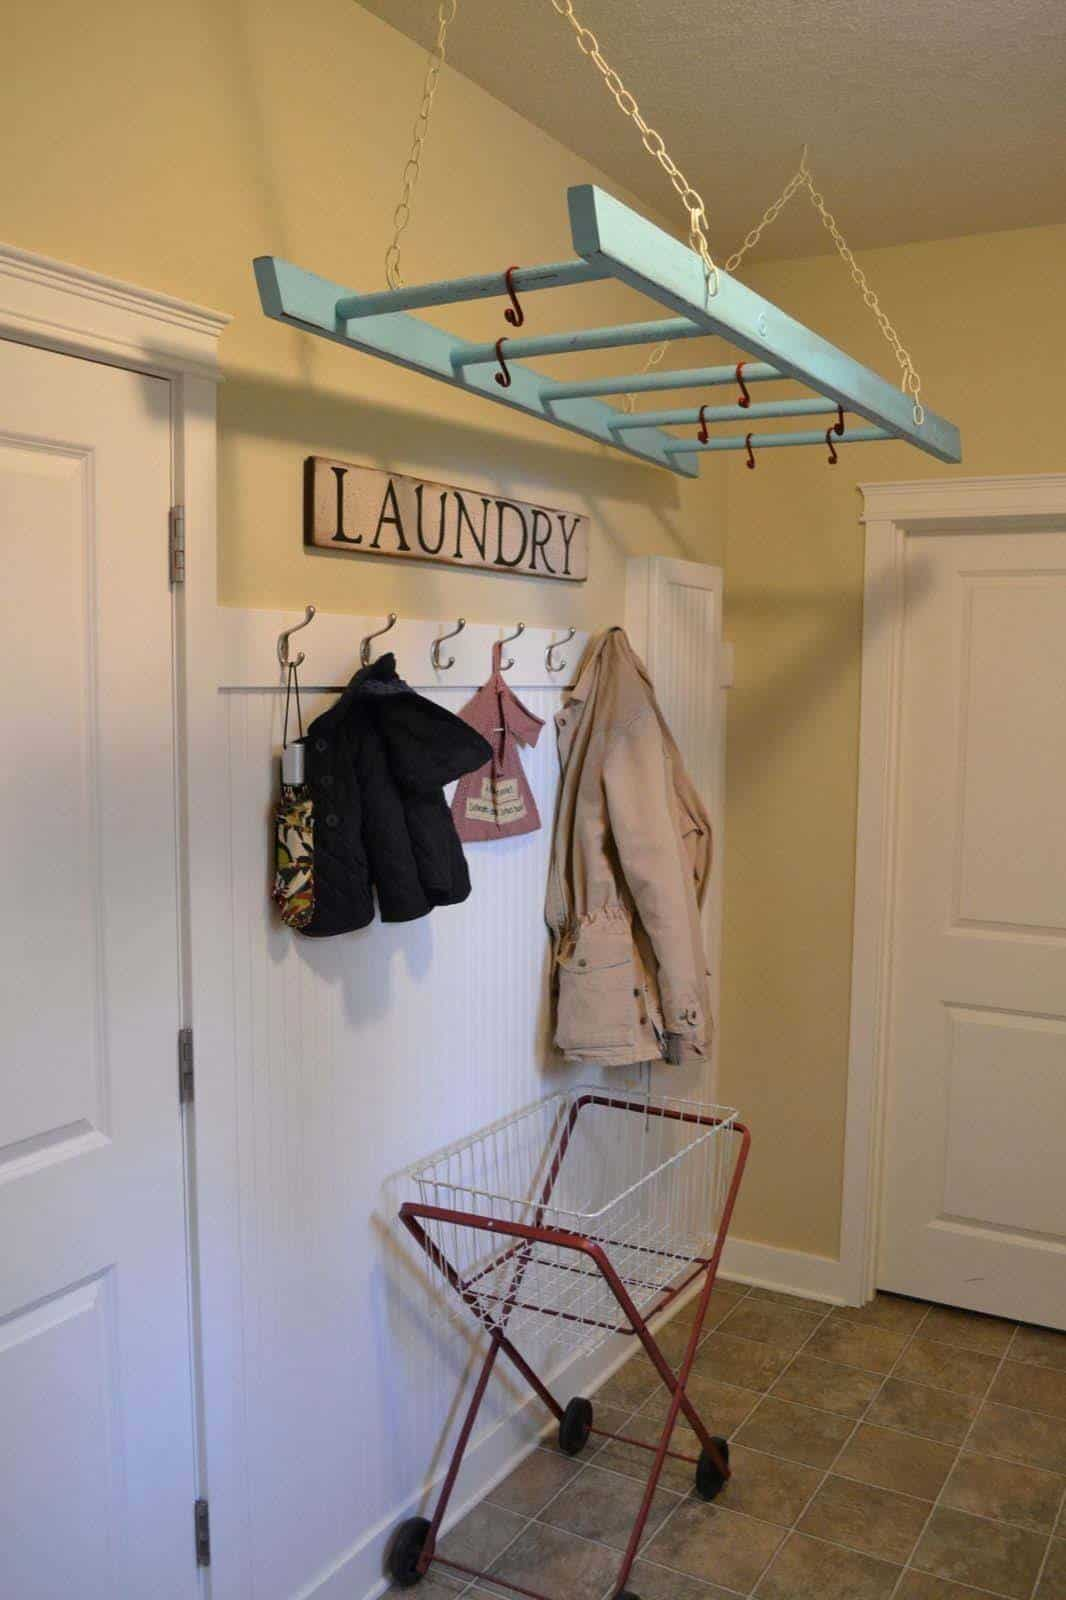 Laundry Room Organization Ideas-36-1 Kindesign